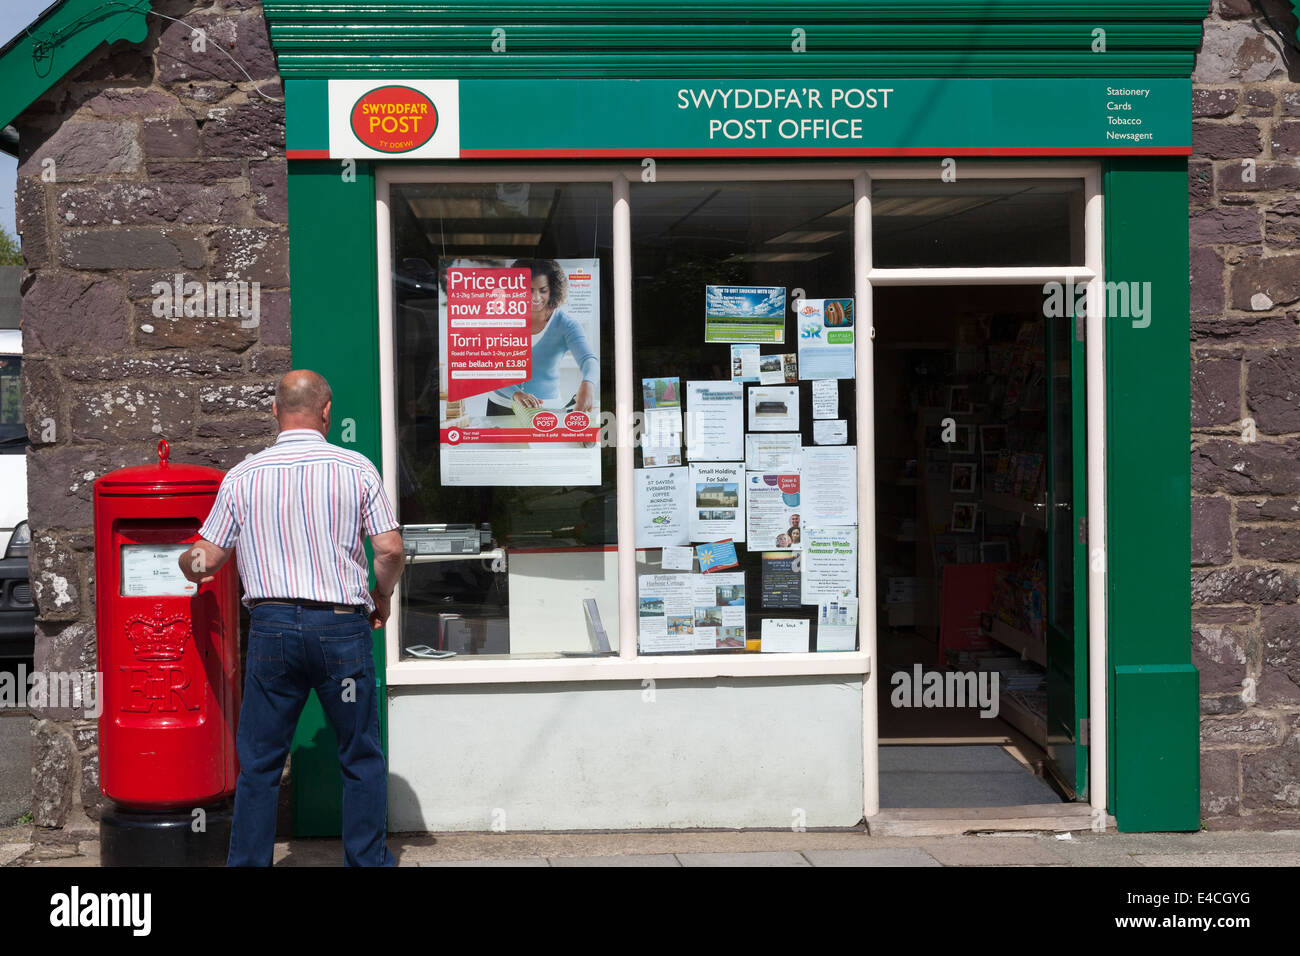 Man posting letter outside the Post Office, St Davids, Pembrokeshire - Stock Image